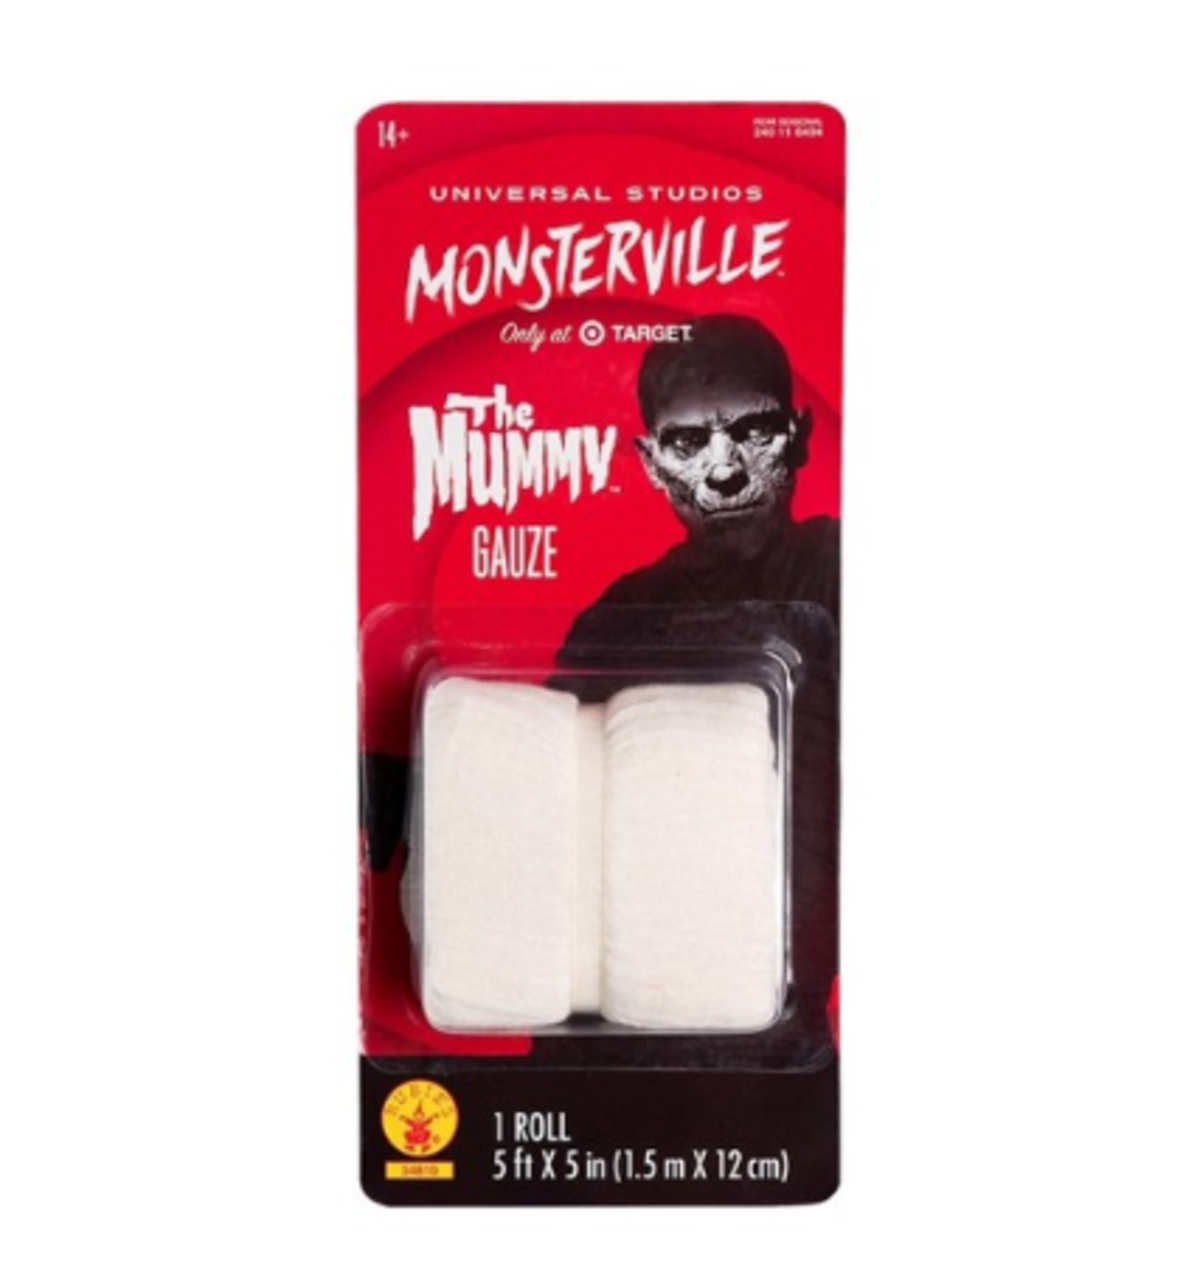 Monsterville Halloween collection from Target and Universal